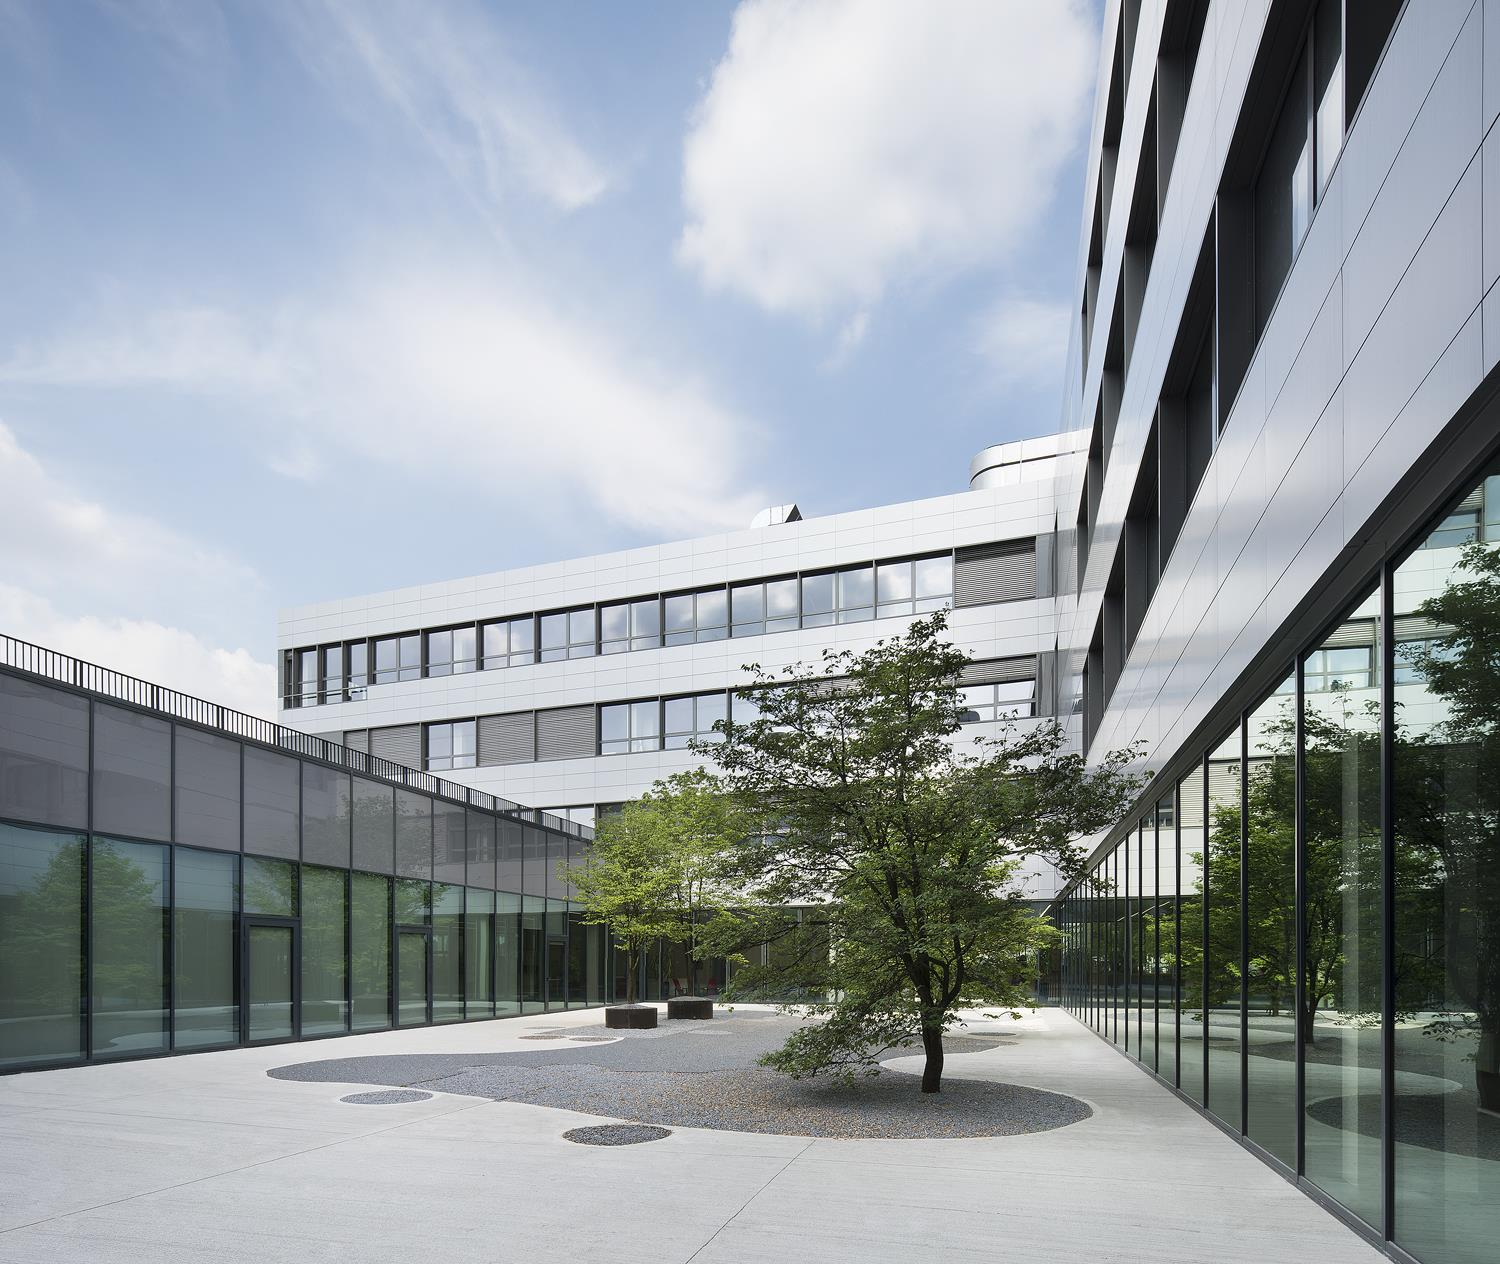 Siemens Headquarter: Photo 17